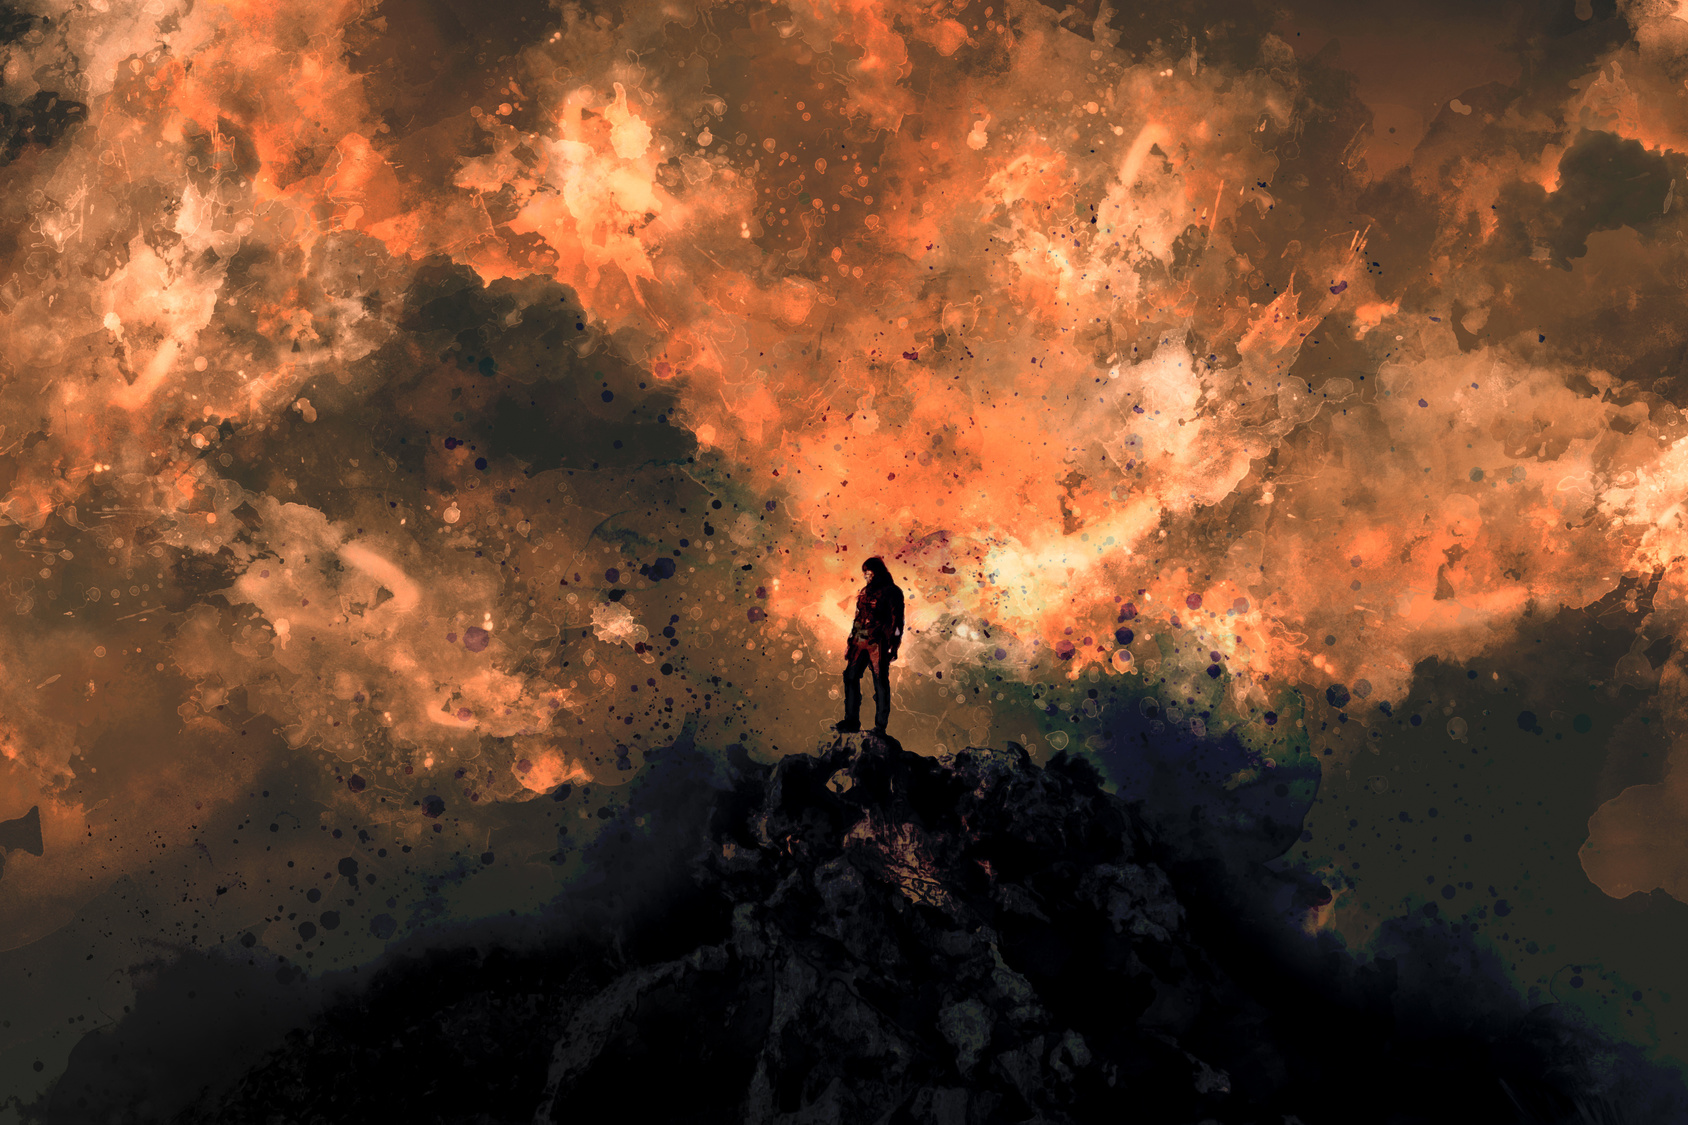 A man on the top of the mountain peak with burning sky background, digital illustration